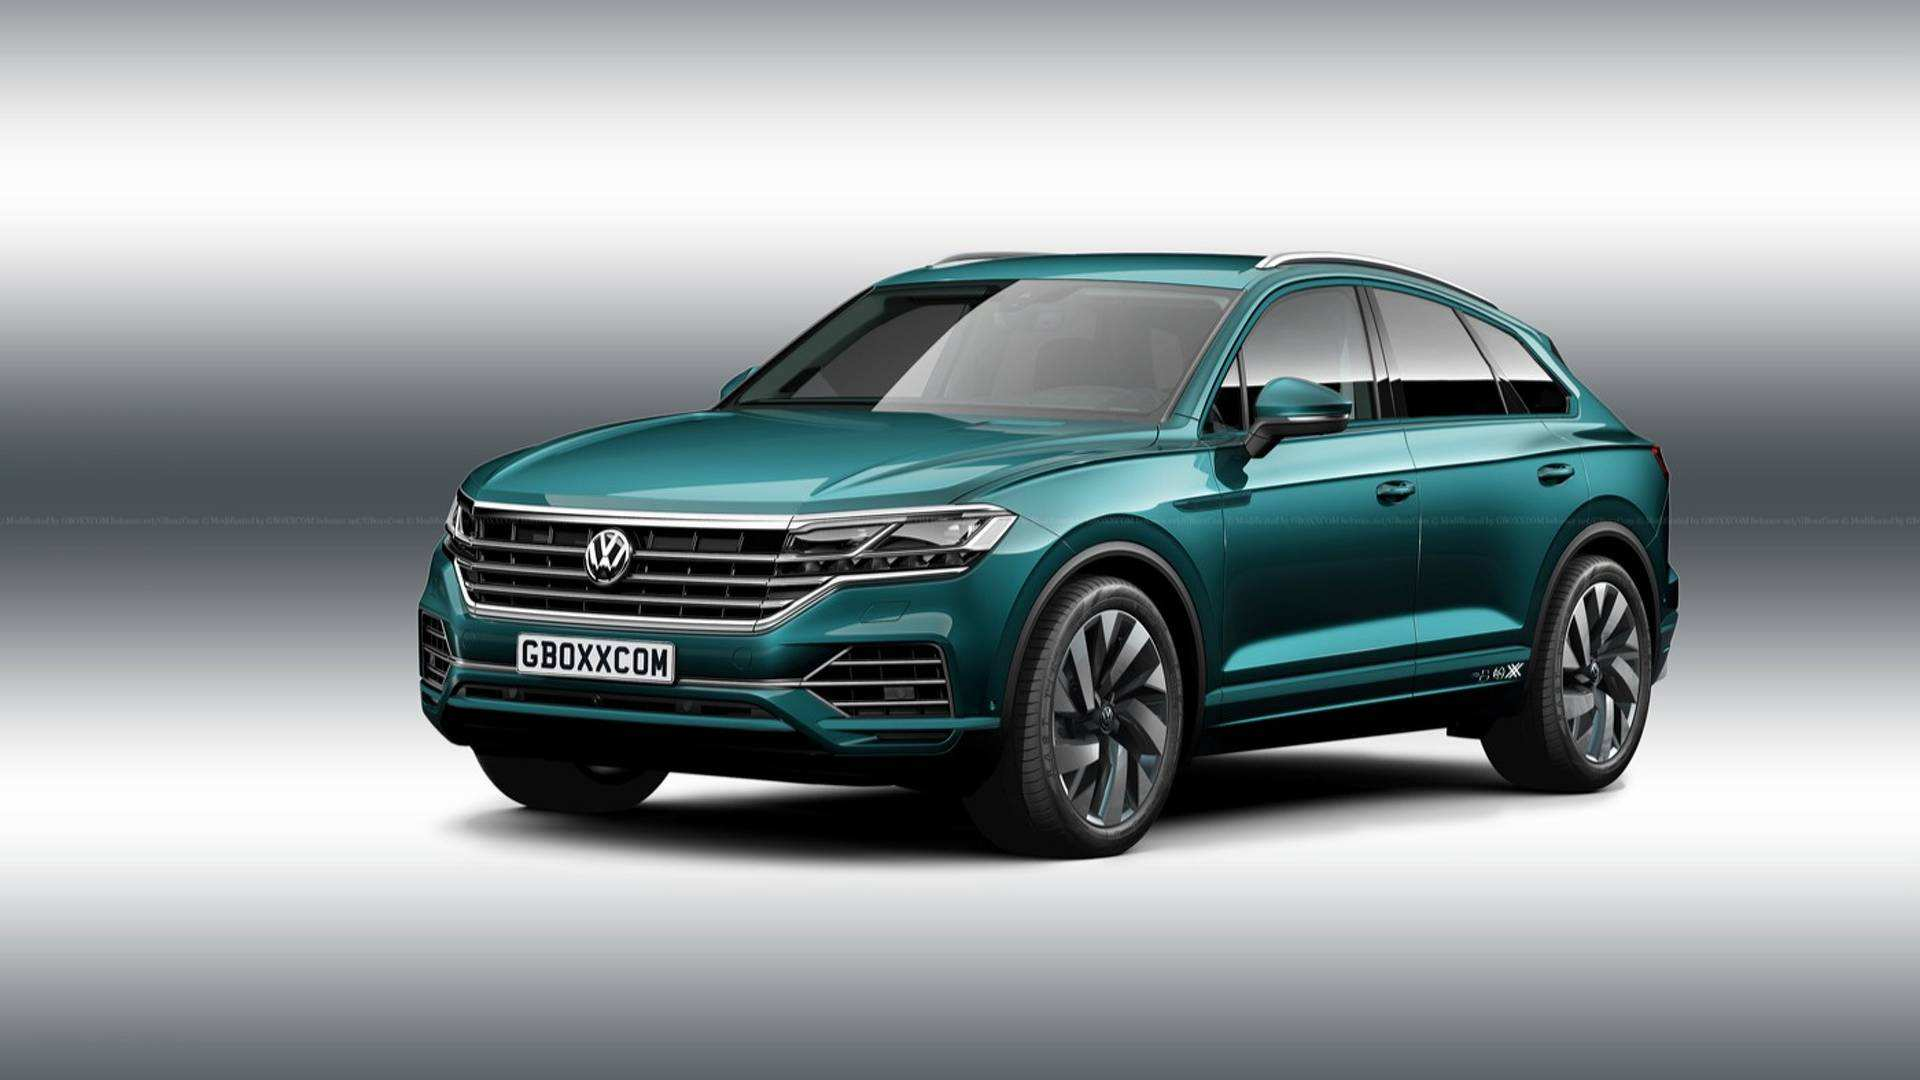 88 Concept of 2019 Volkswagen Suv Spesification with 2019 Volkswagen Suv